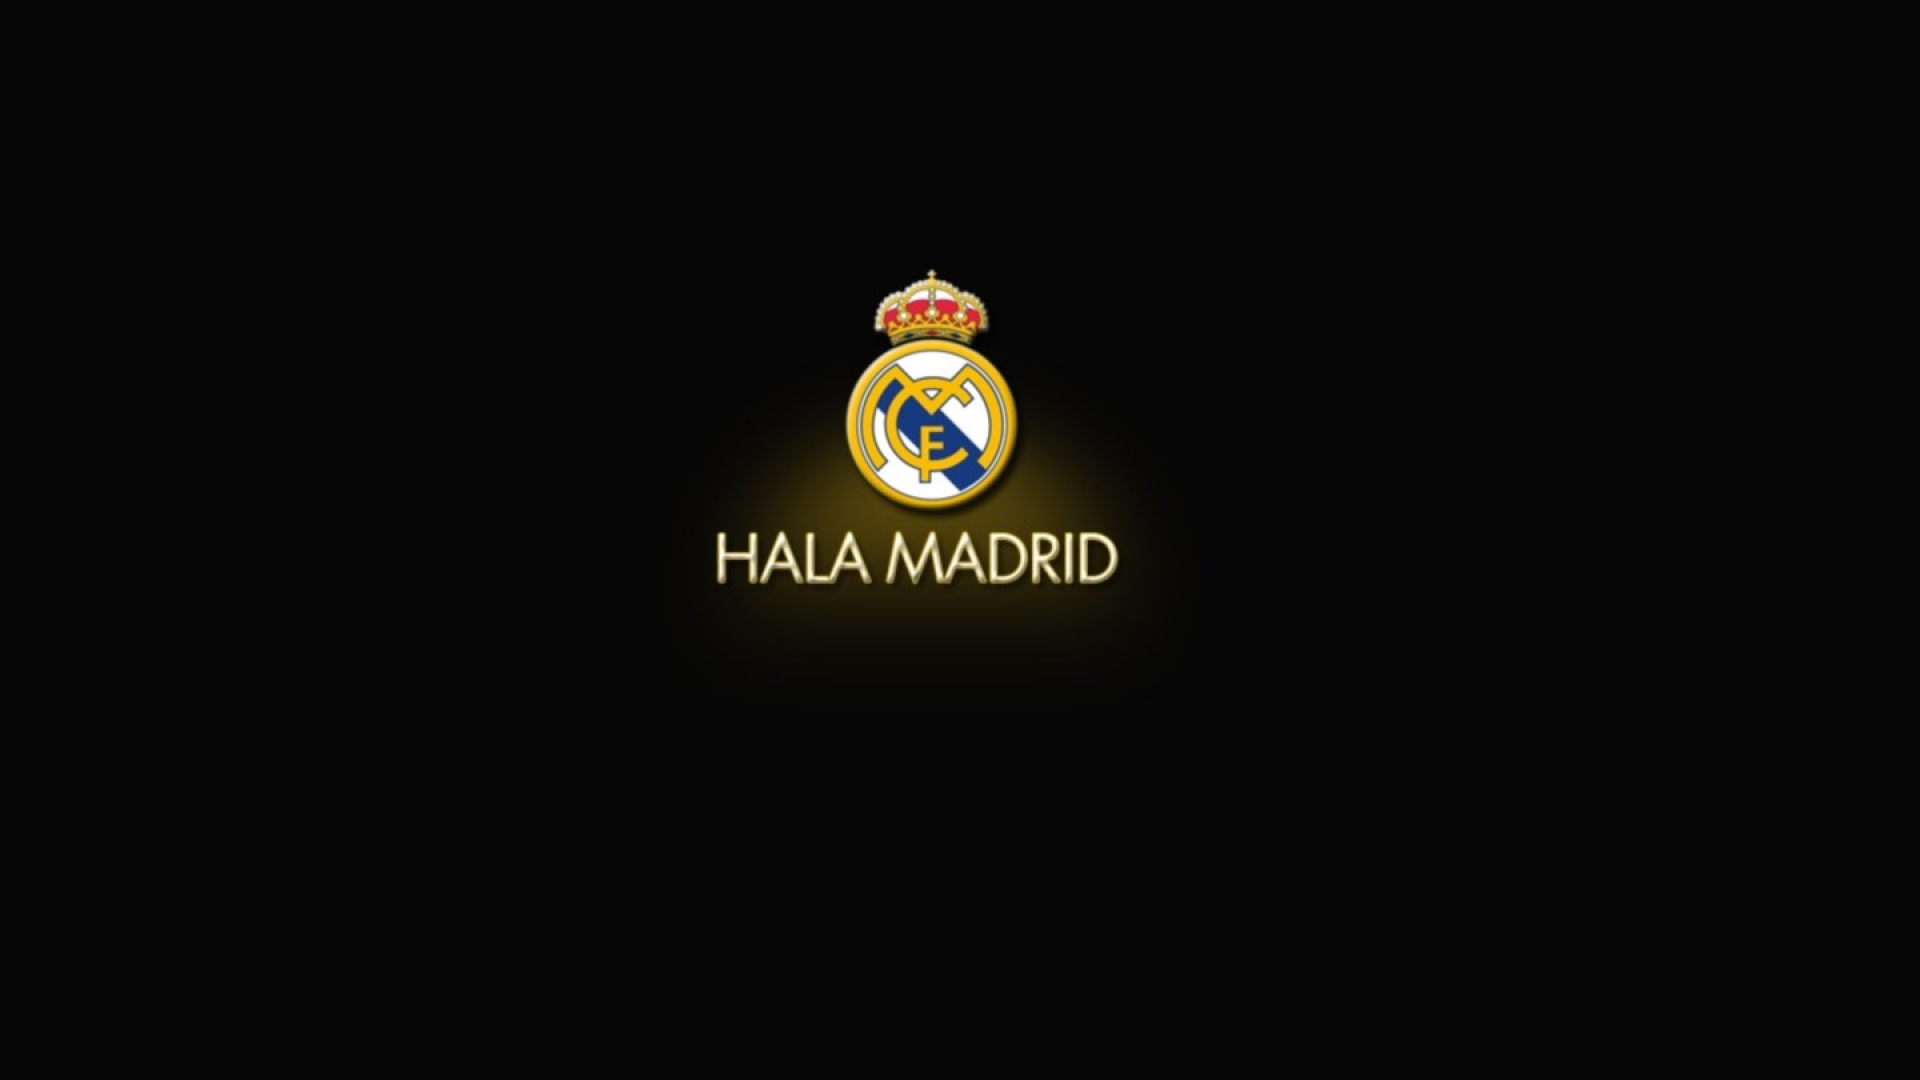 Real Logo Madrid Black Wallpapers